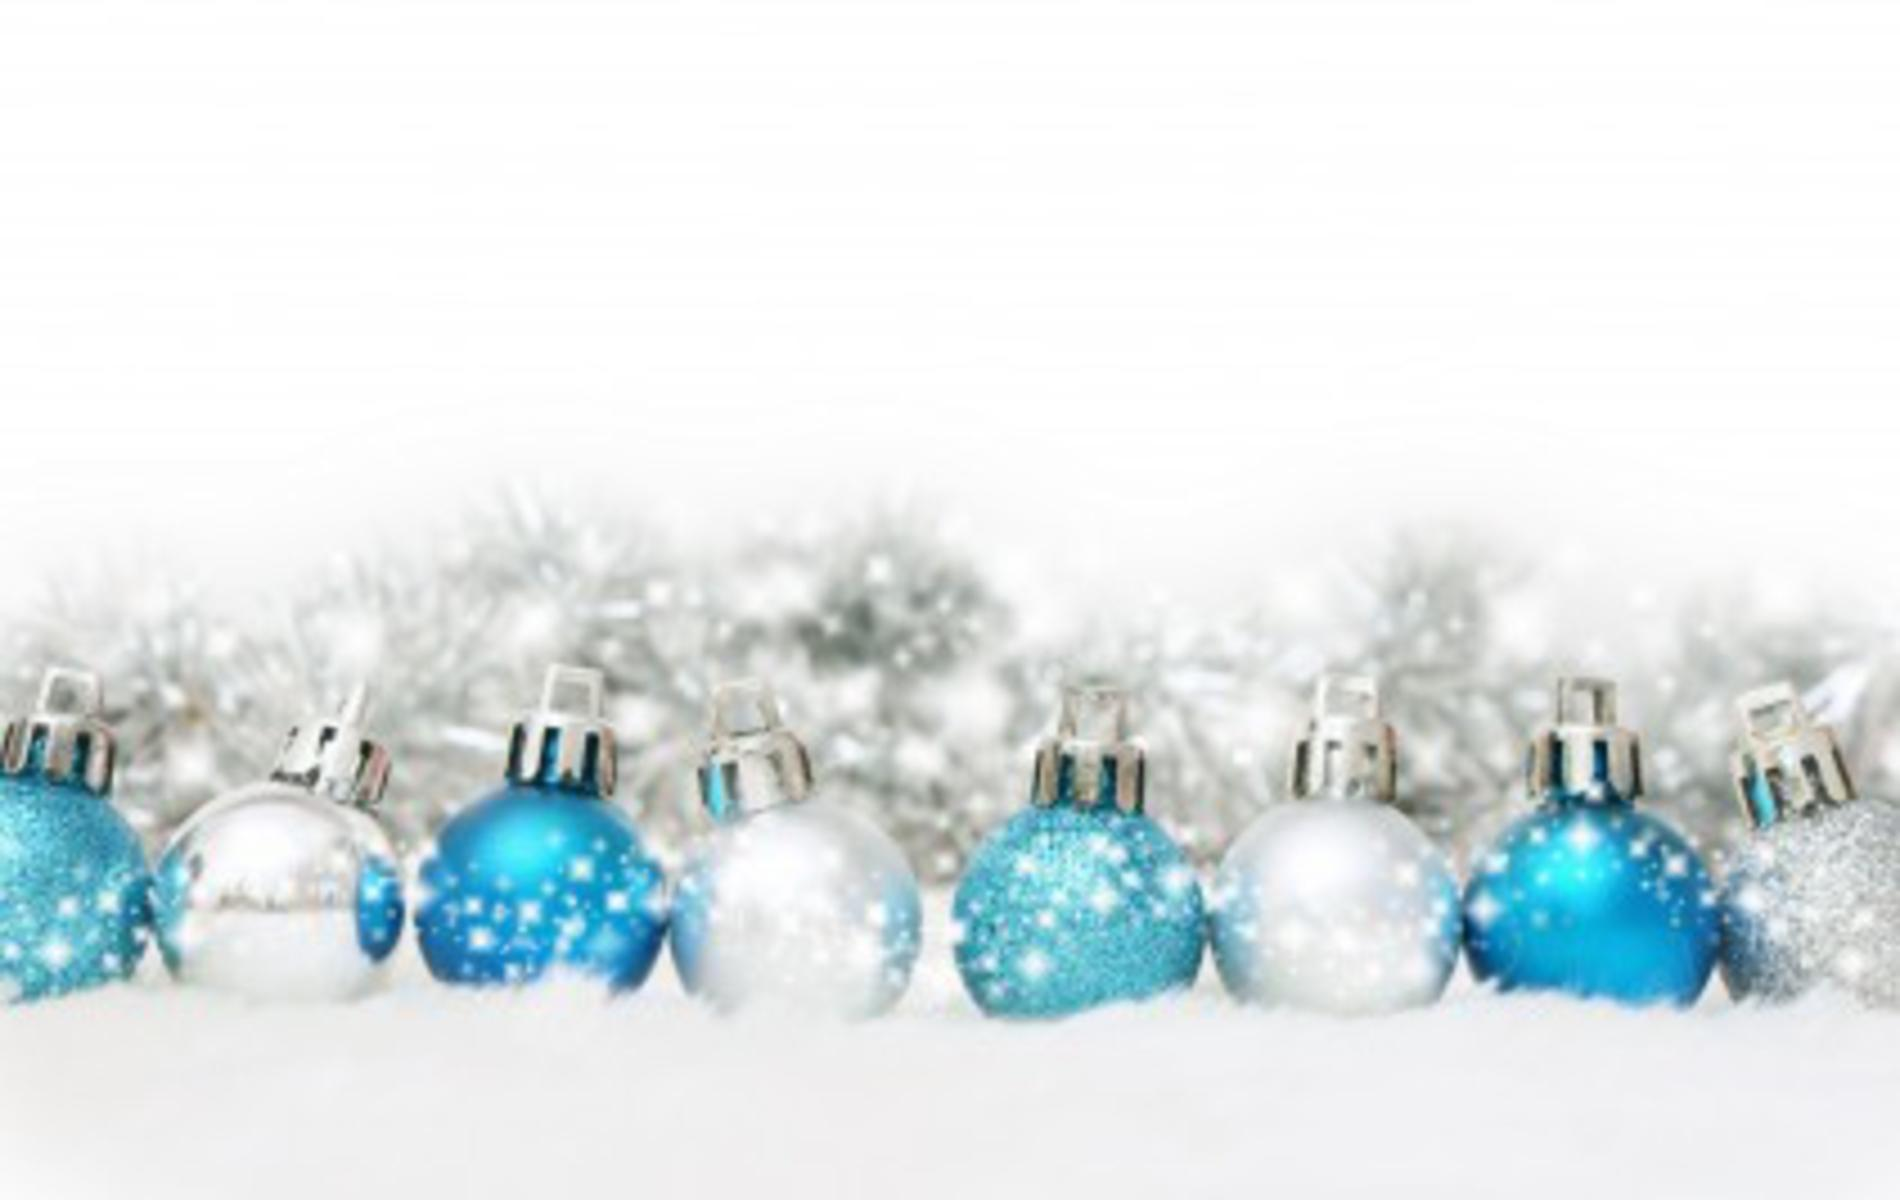 Free Christmas Wallpaper Background pictures